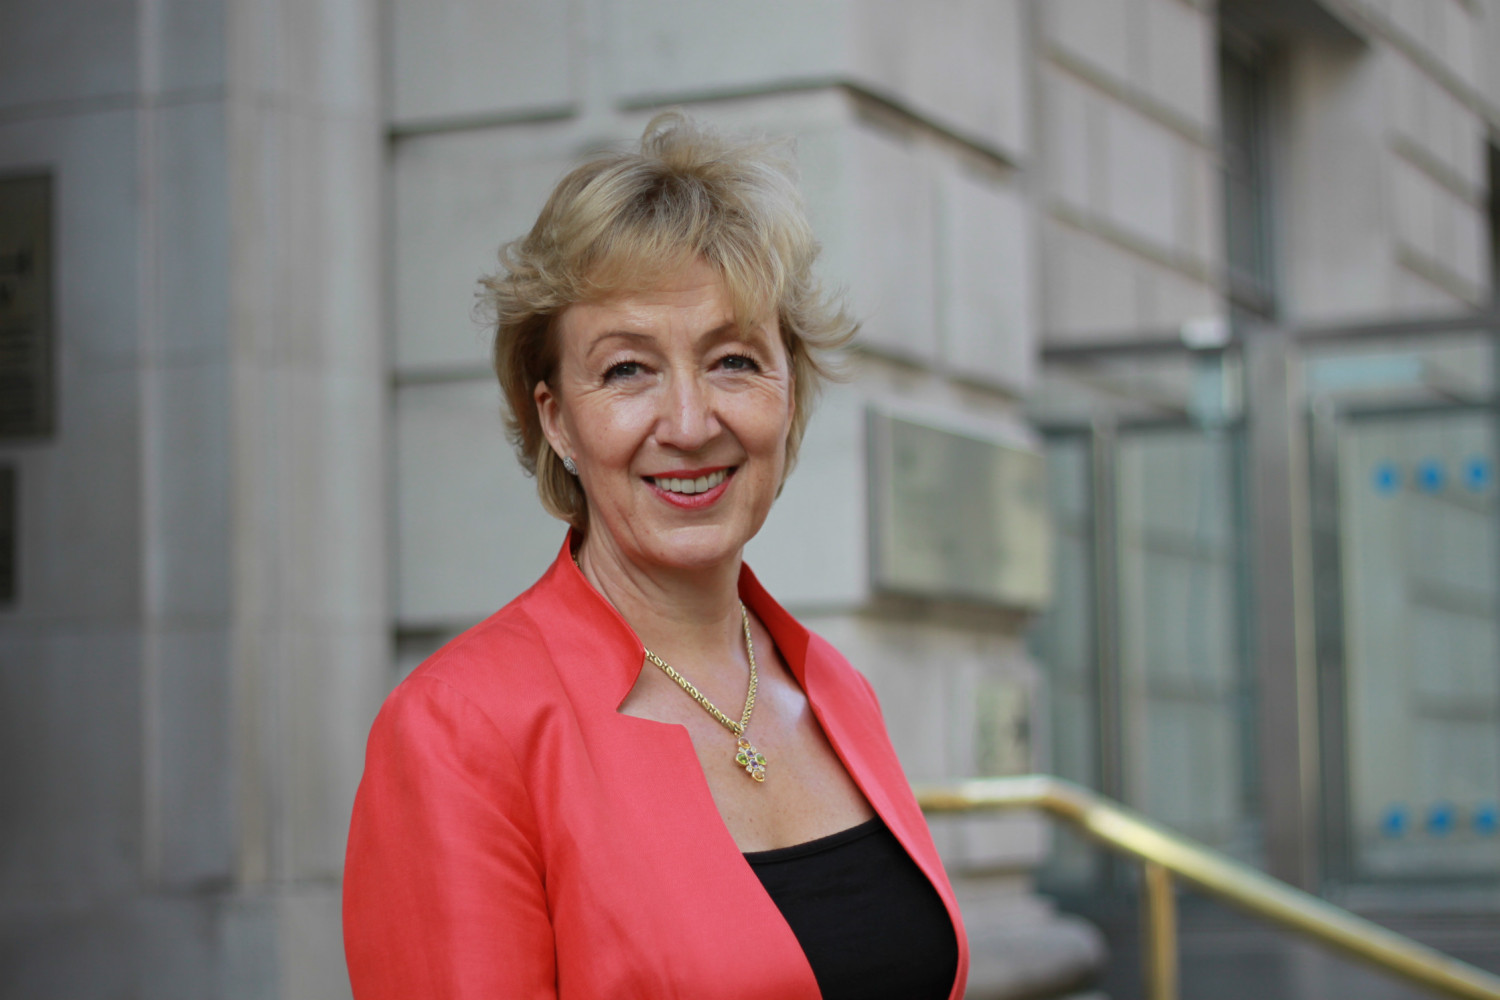 Andrea Leadsom has come under fire for her views on LGBT issues